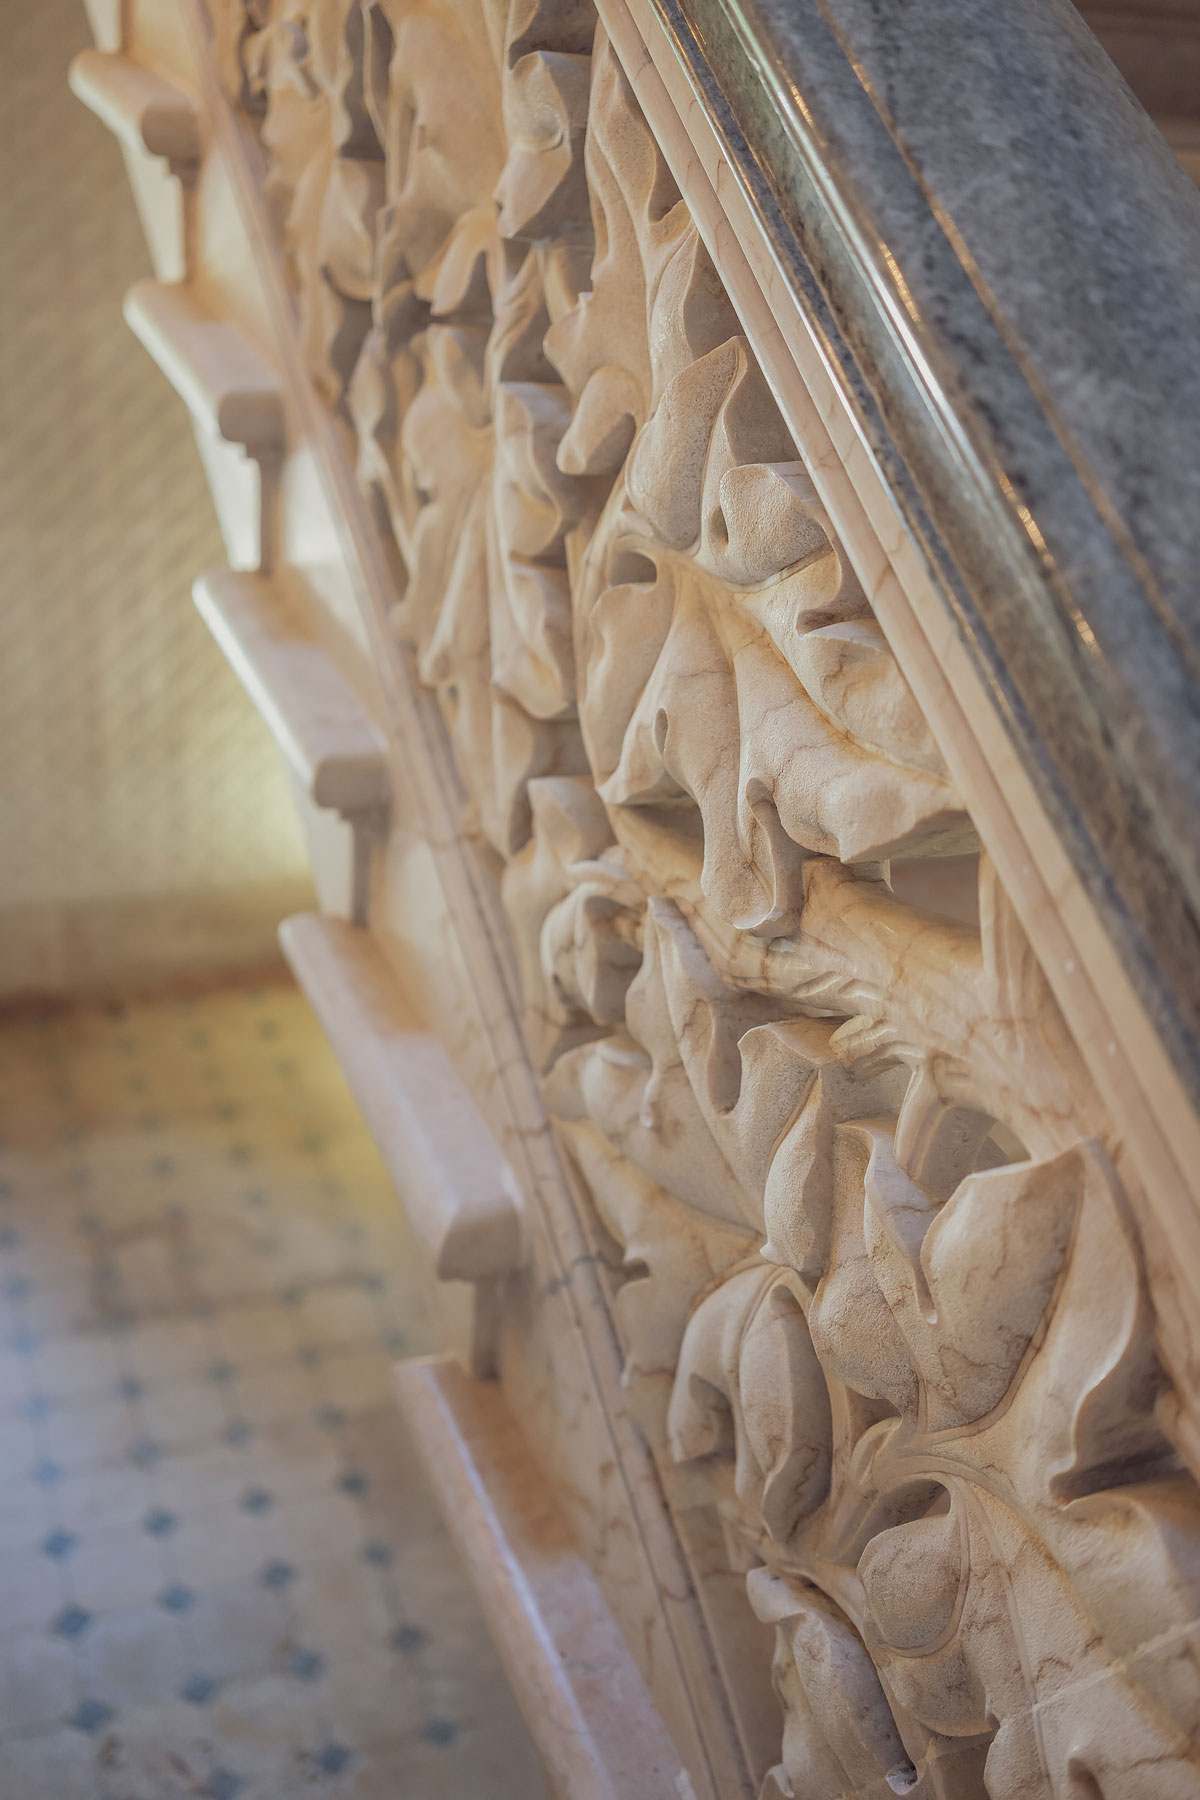 Slow travel to Lisbon | Monserrate Palace stair details© Soonafternoon